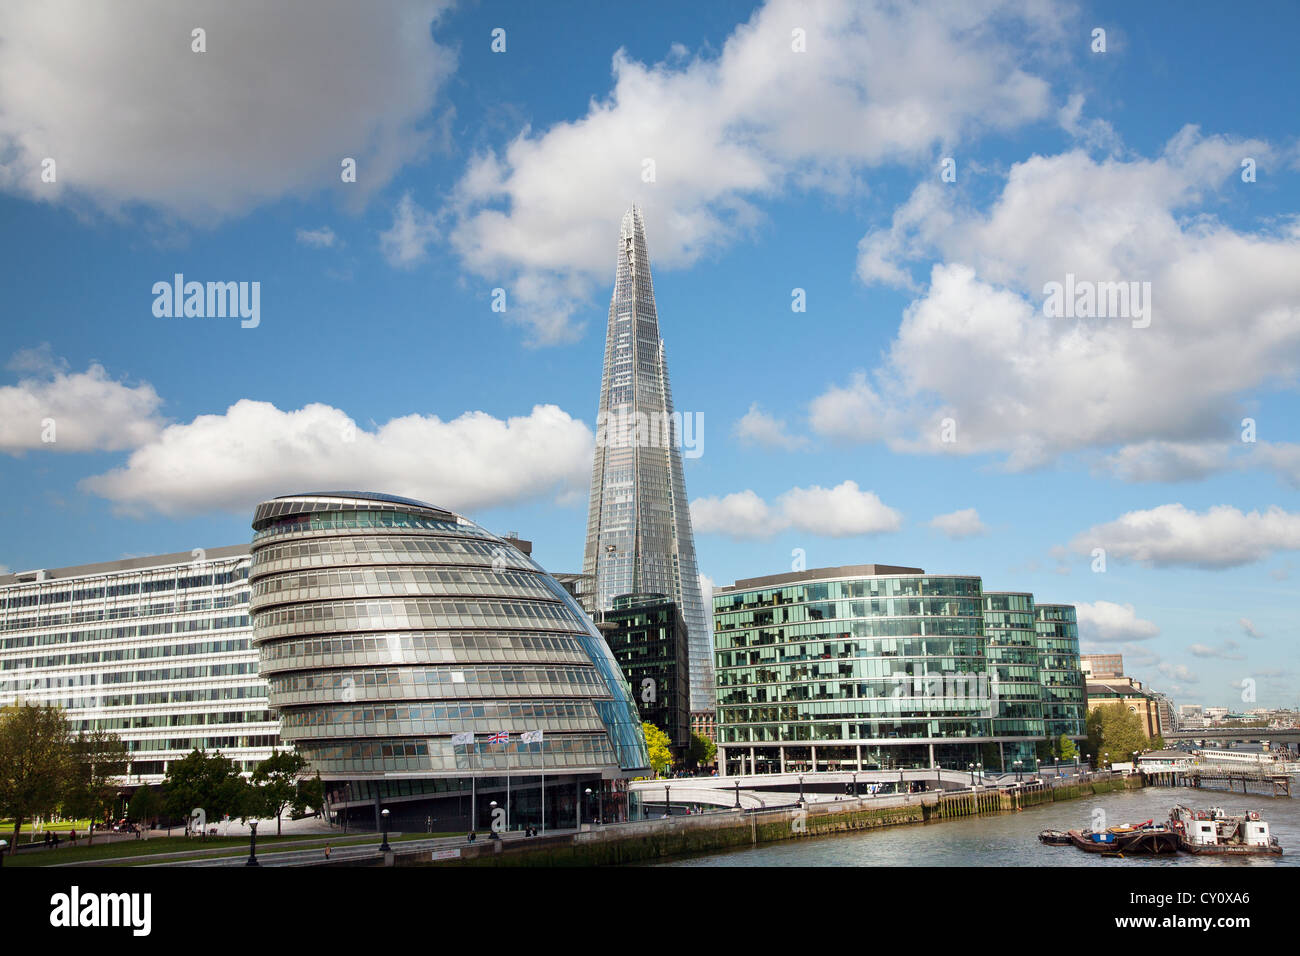 England. London. City Hall with the Shard building by the River Thames. Stock Photo